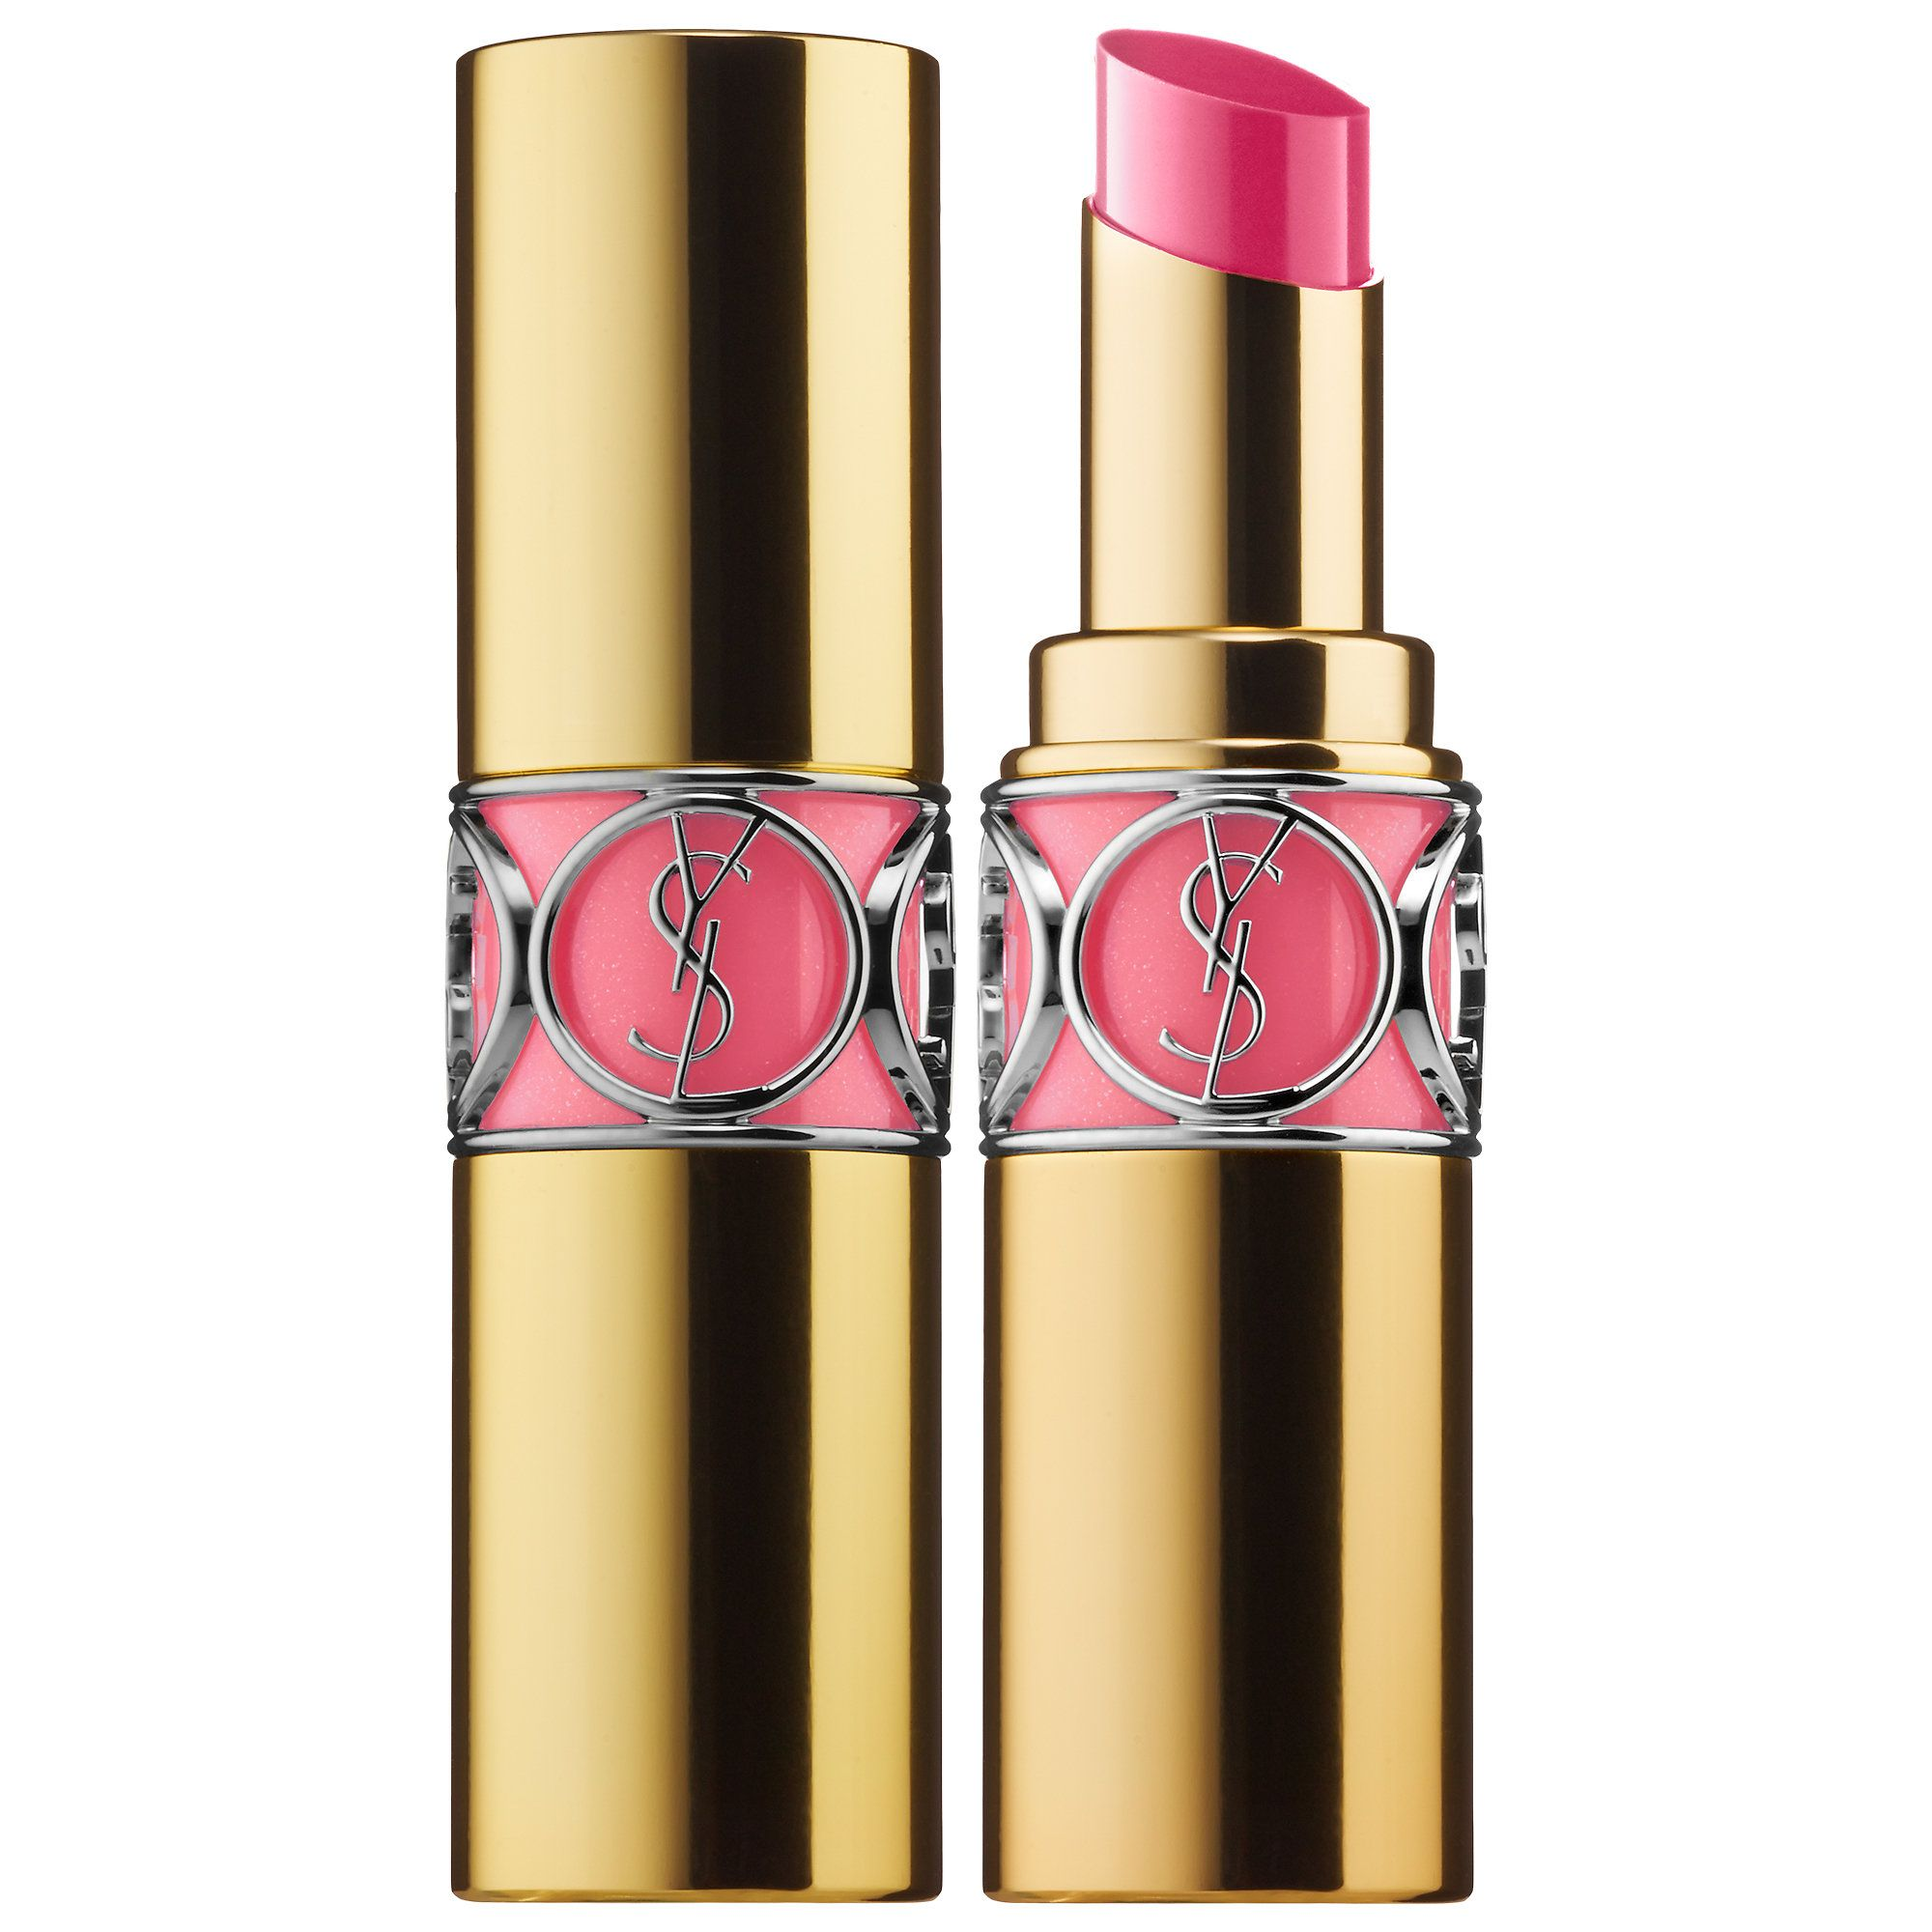 Makeup Review, Swatches: YSL Rouge Volupté Shine Lipstick